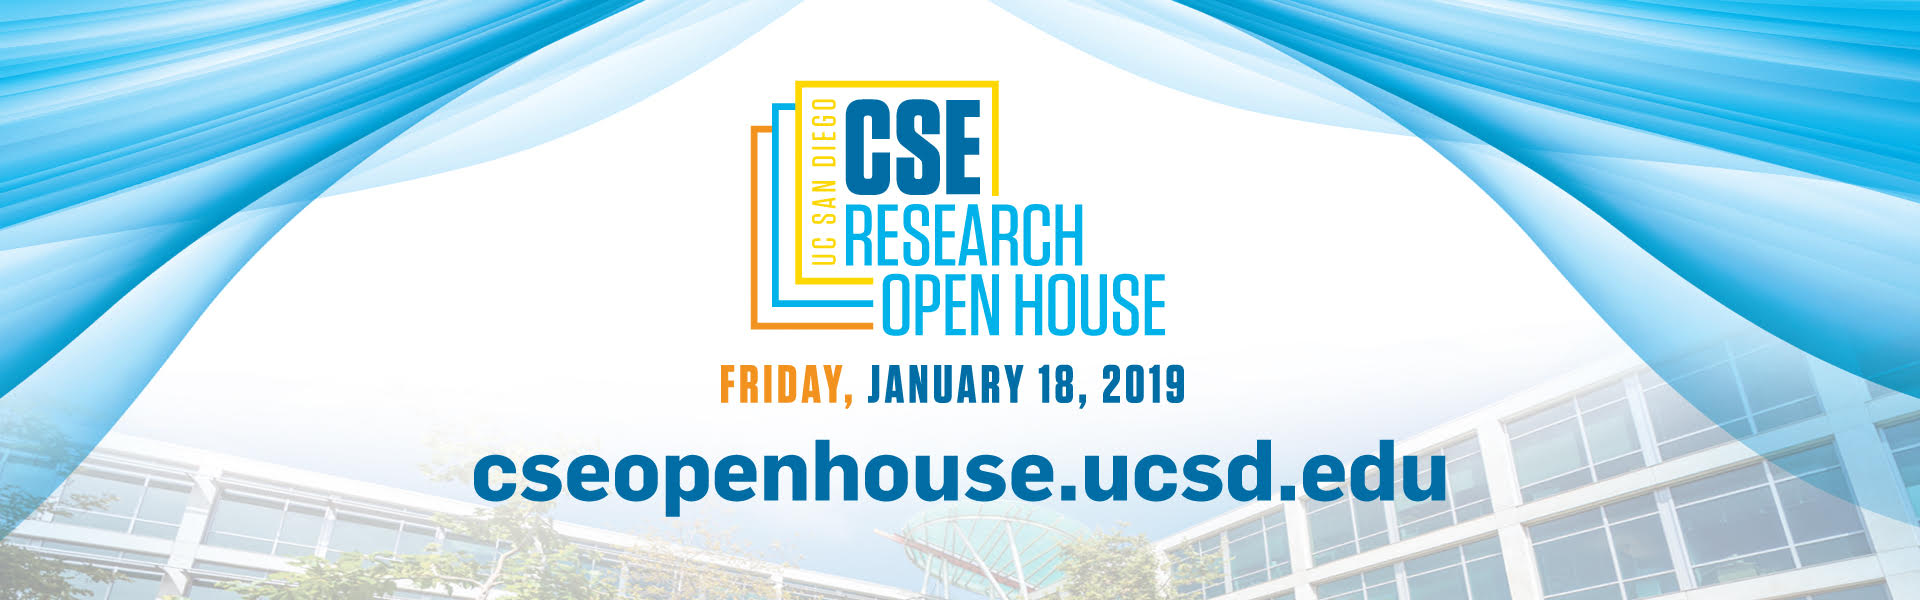 hight resolution of cse research open house